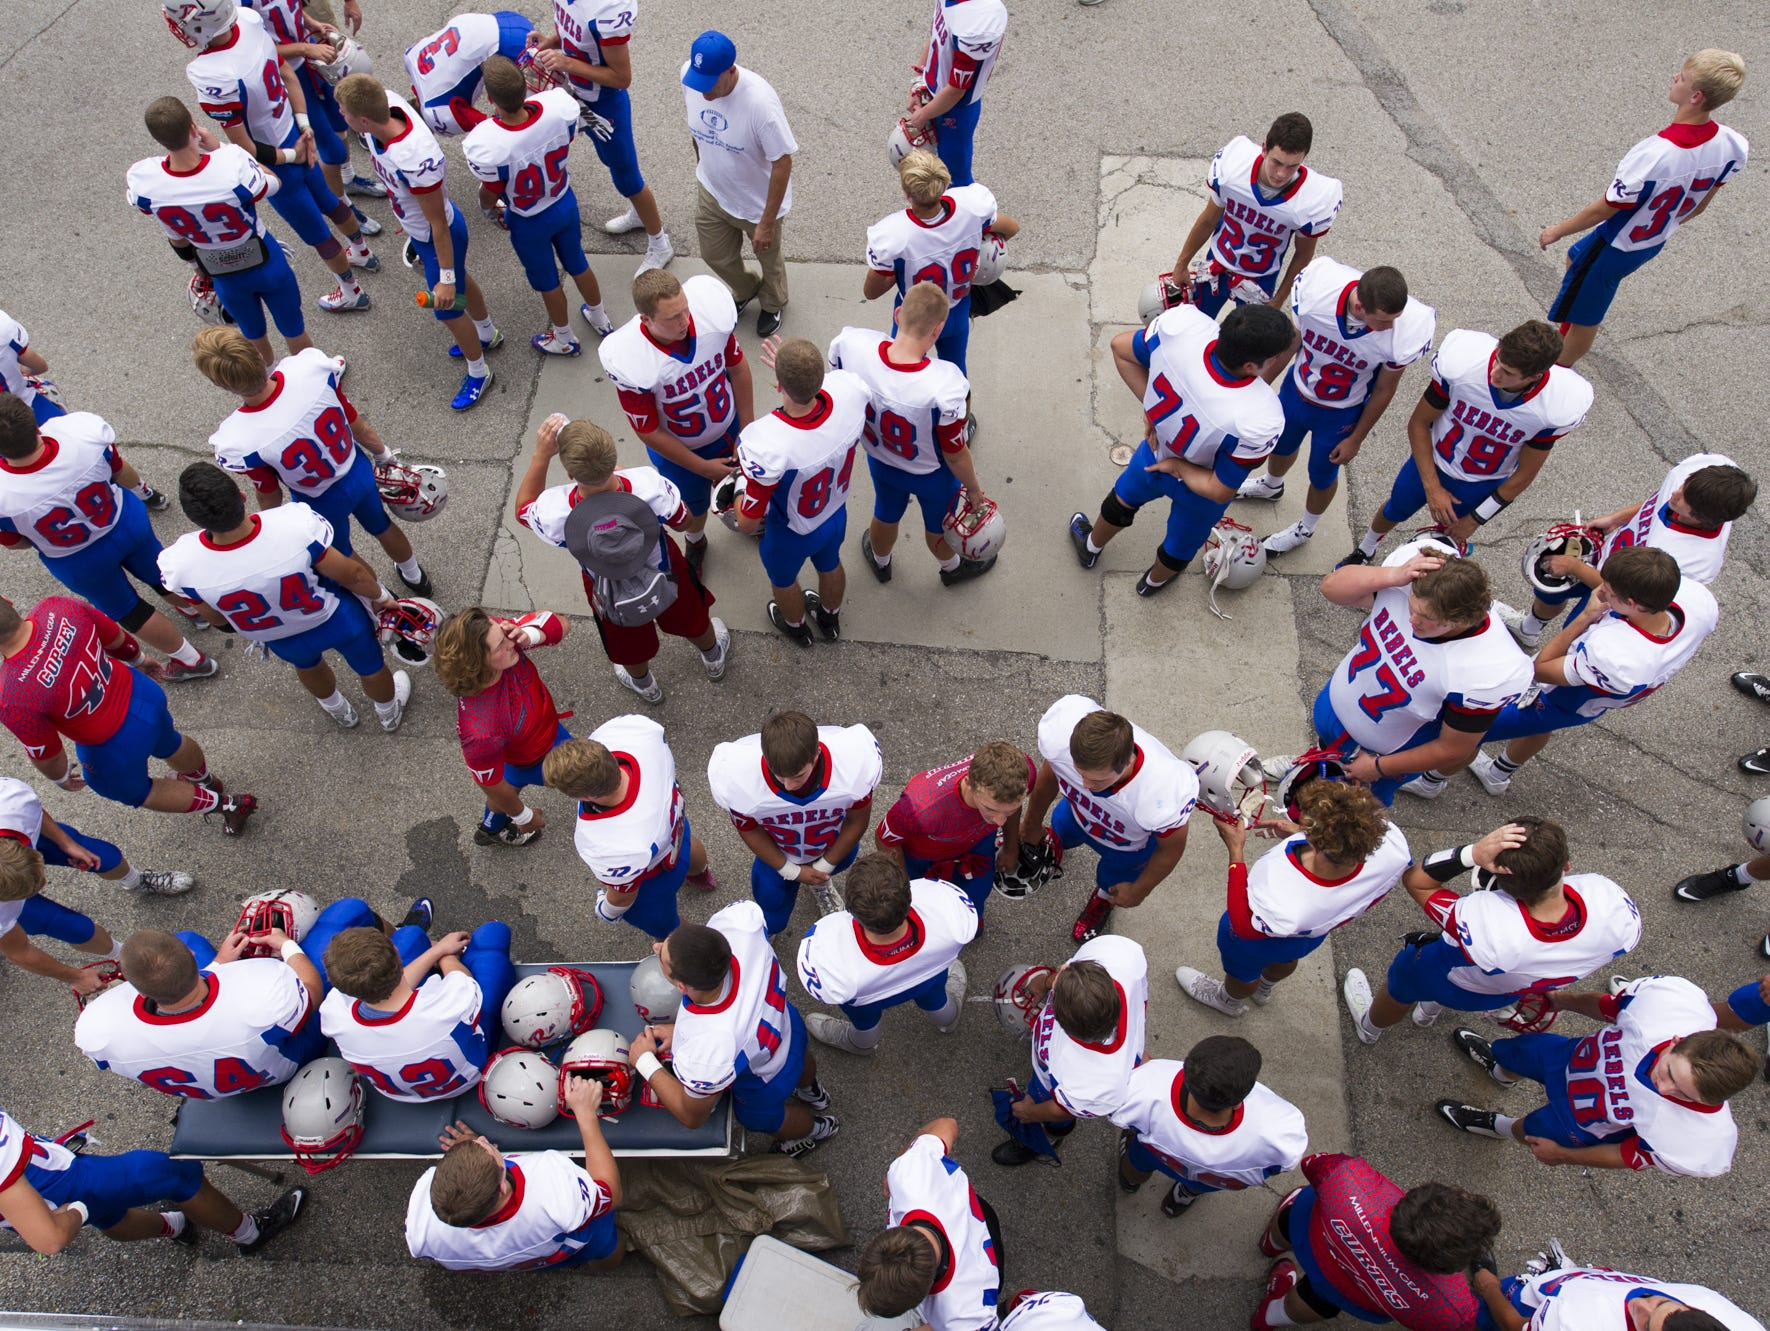 The Roncalli team mingles outside the locker room as they await news of an approaching storm's effect on their game vs. Bishop Chatard. It was eventually postponed to Saturday at 8 p.m.